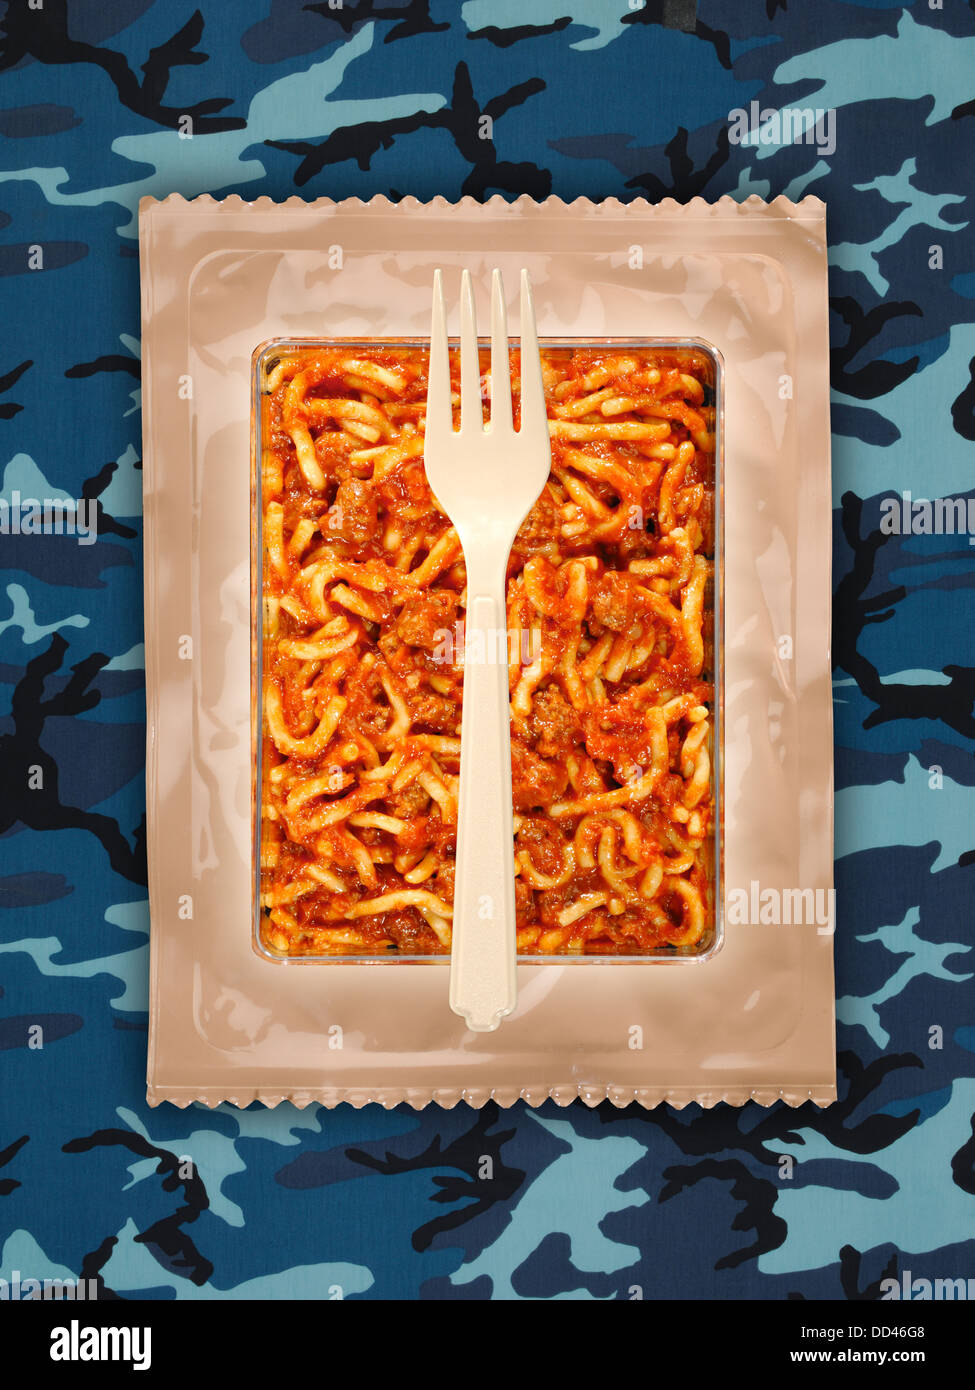 Military food rations or MRE Meals Ready to Eat on a camouflaged background. Packages open with plastic utensils. - Stock Image